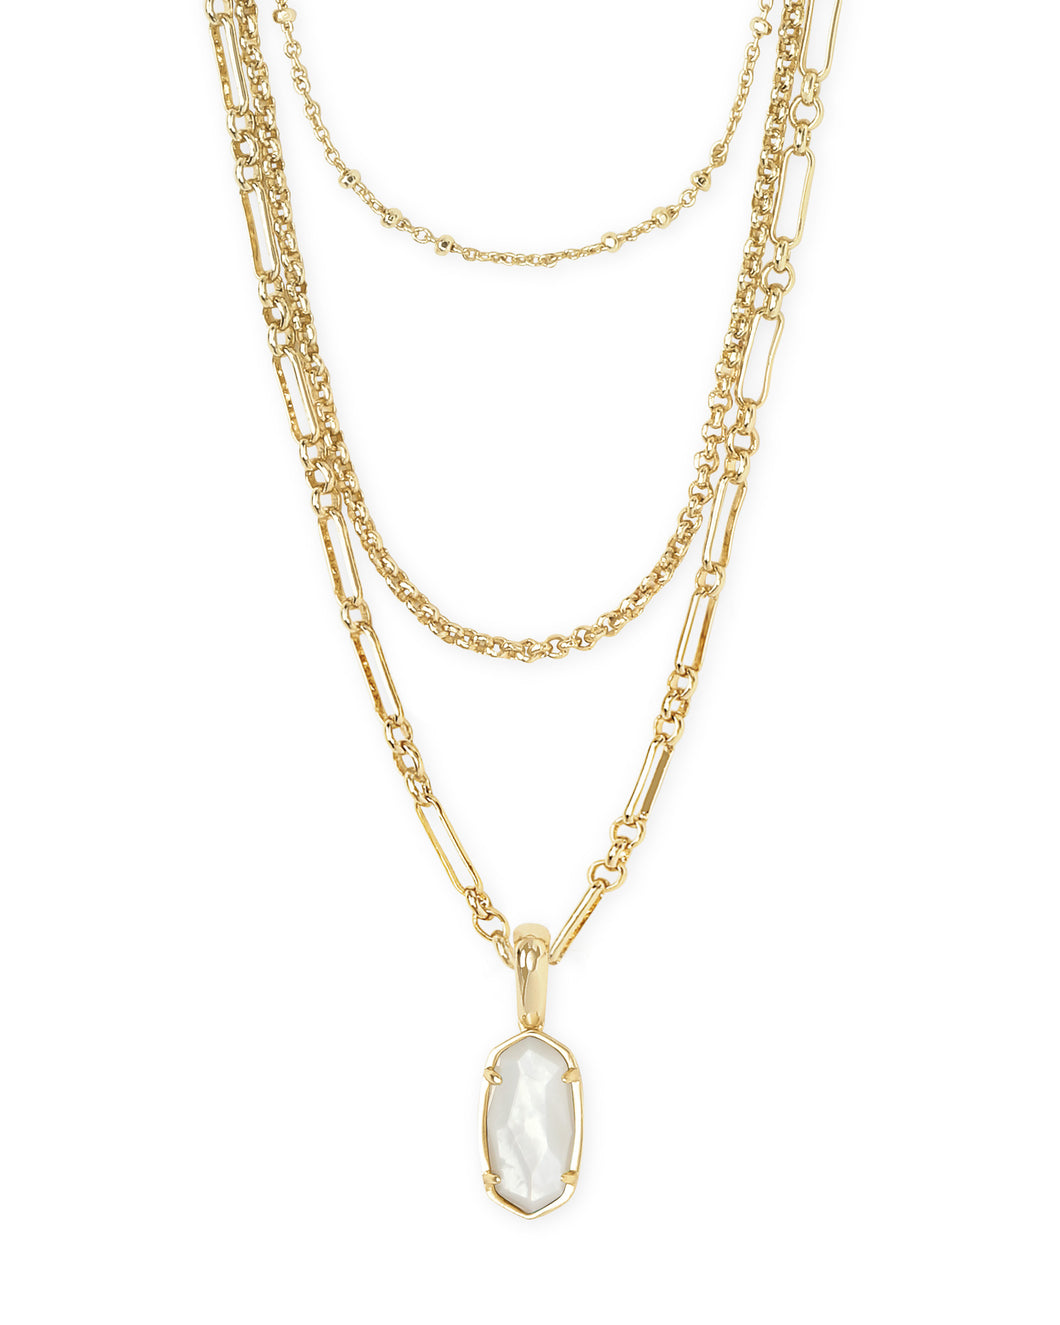 Elisa Gold Triple Strand Necklace in Ivory Mother of Pearl